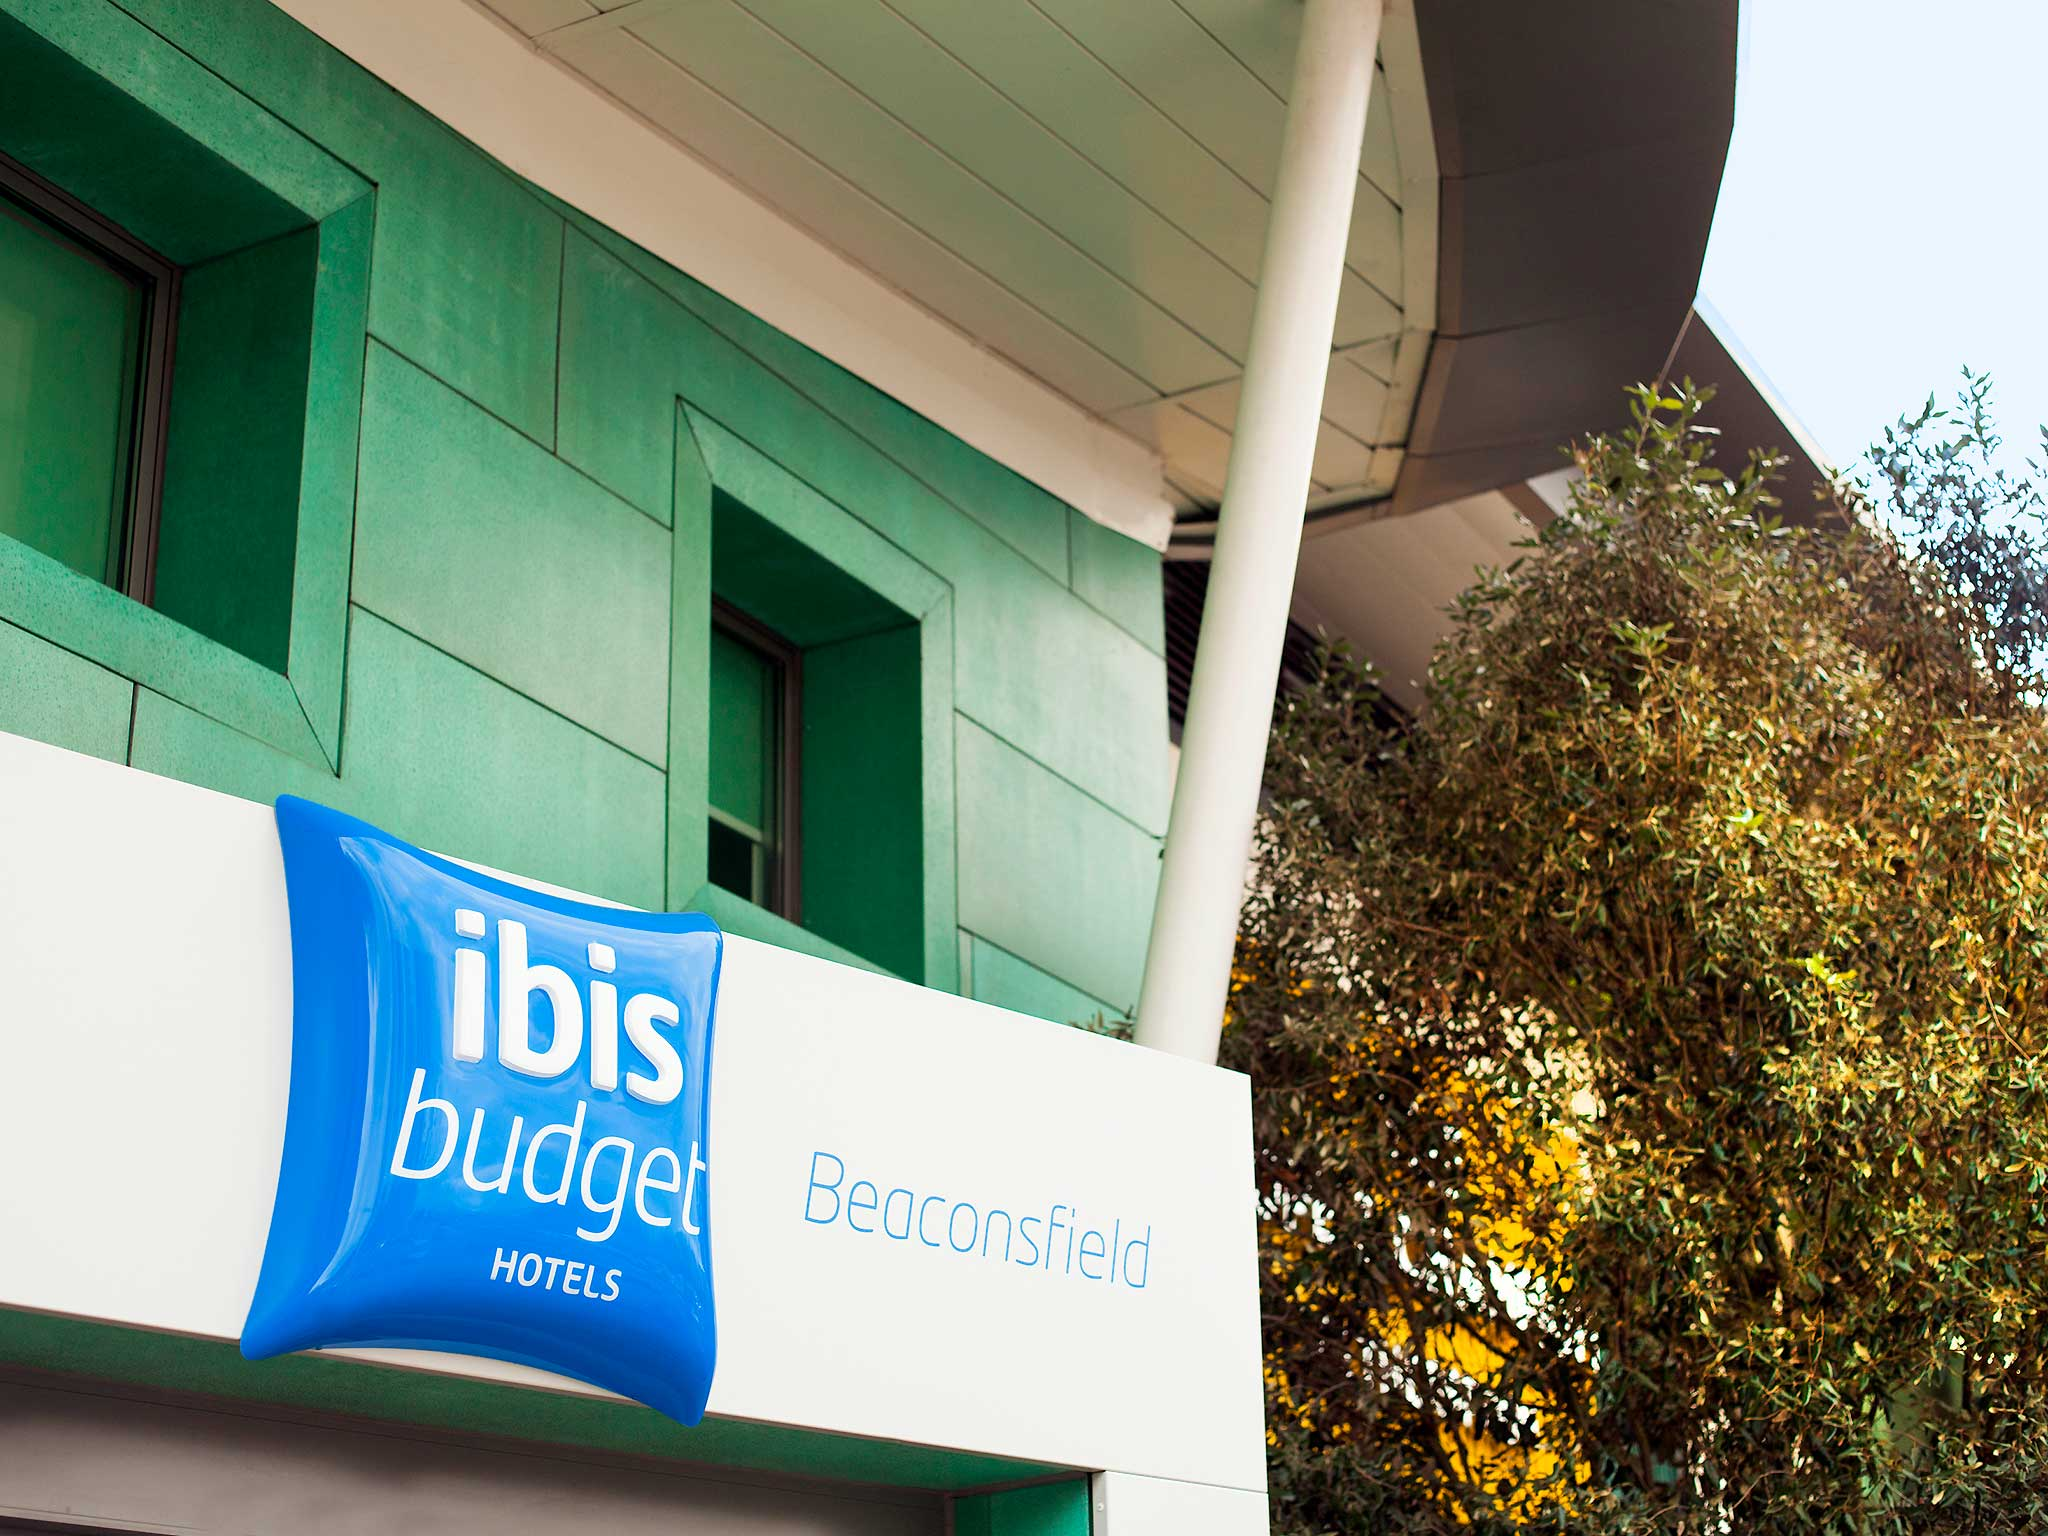 Hotel - ibis budget Beaconsfield